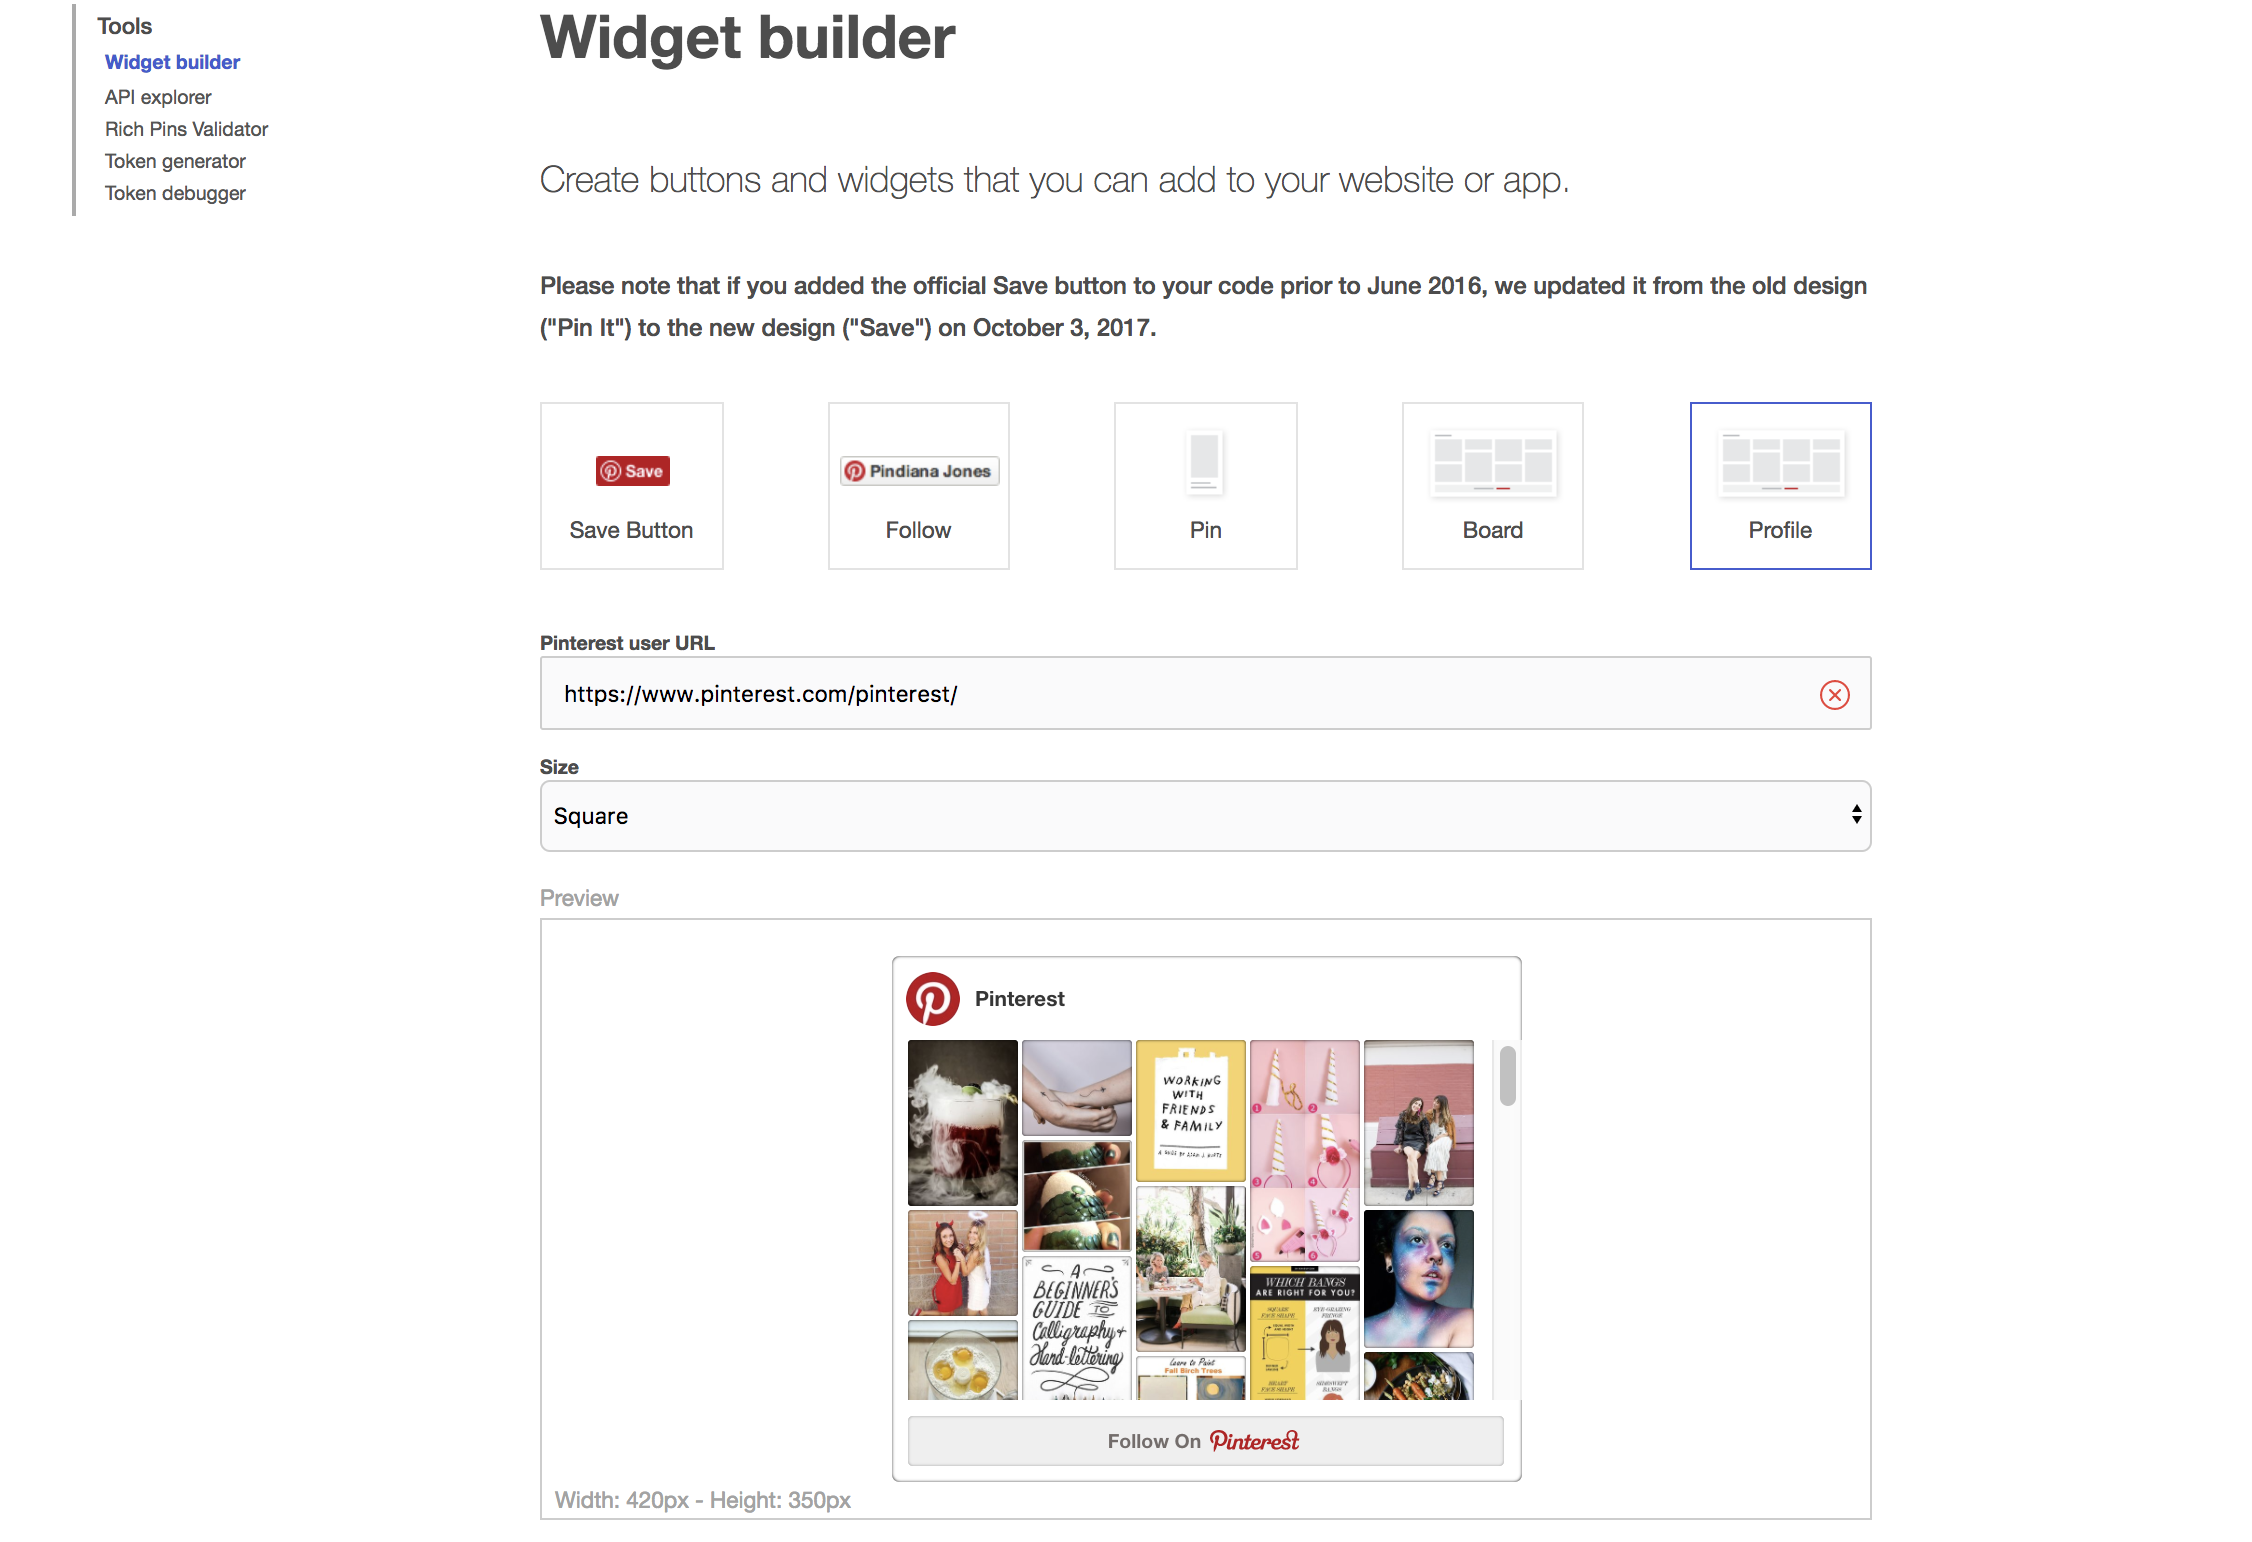 How To Increase Your Followers and Repins on Pinterest - AndreaBolder.com